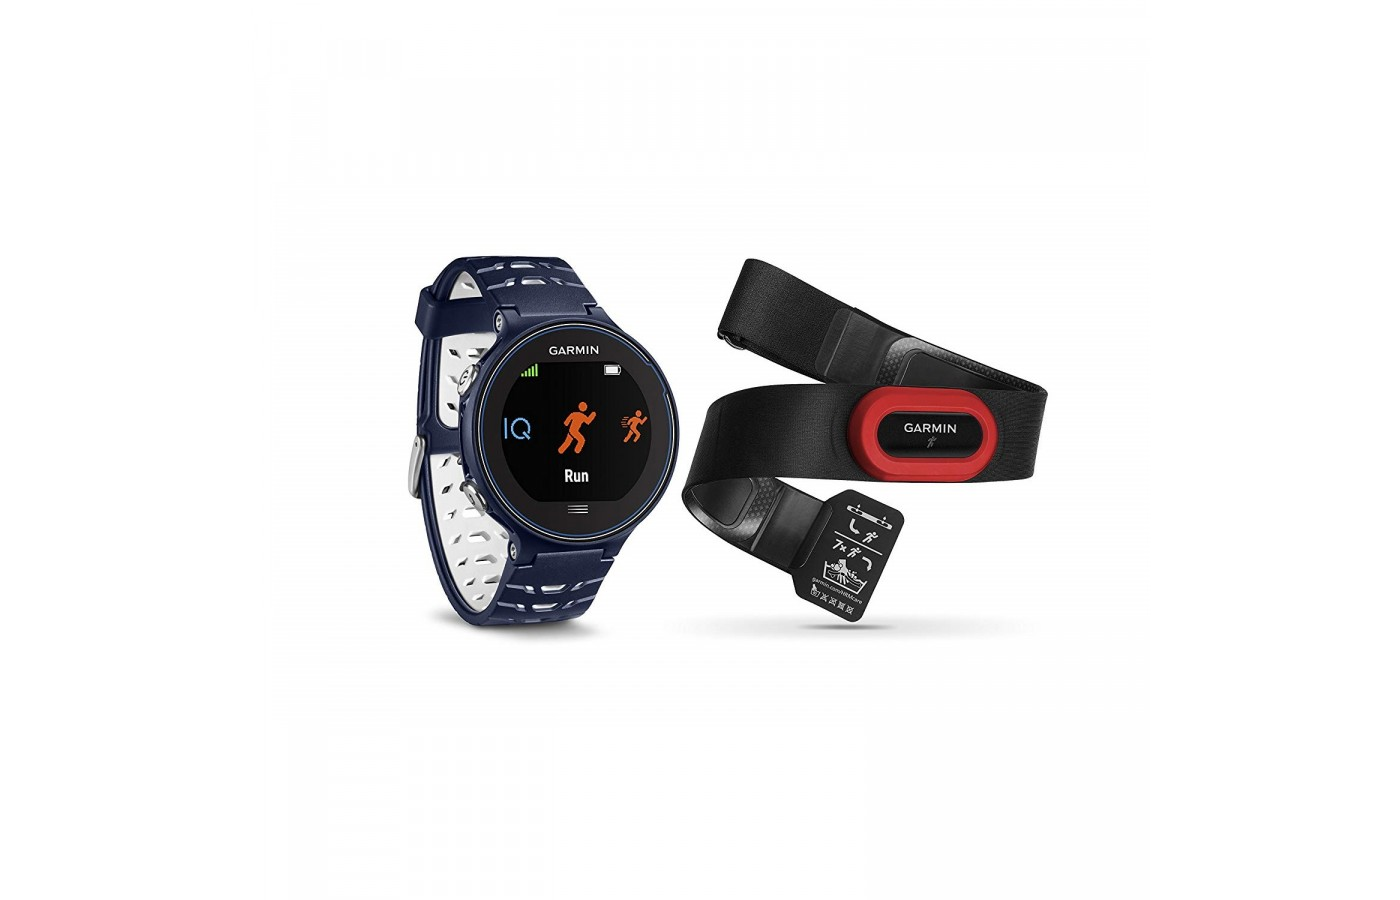 The Garmin Forerunner 630 offers a HRM-Run monitor for even further accuracy with heart rate monitoring when in motion.